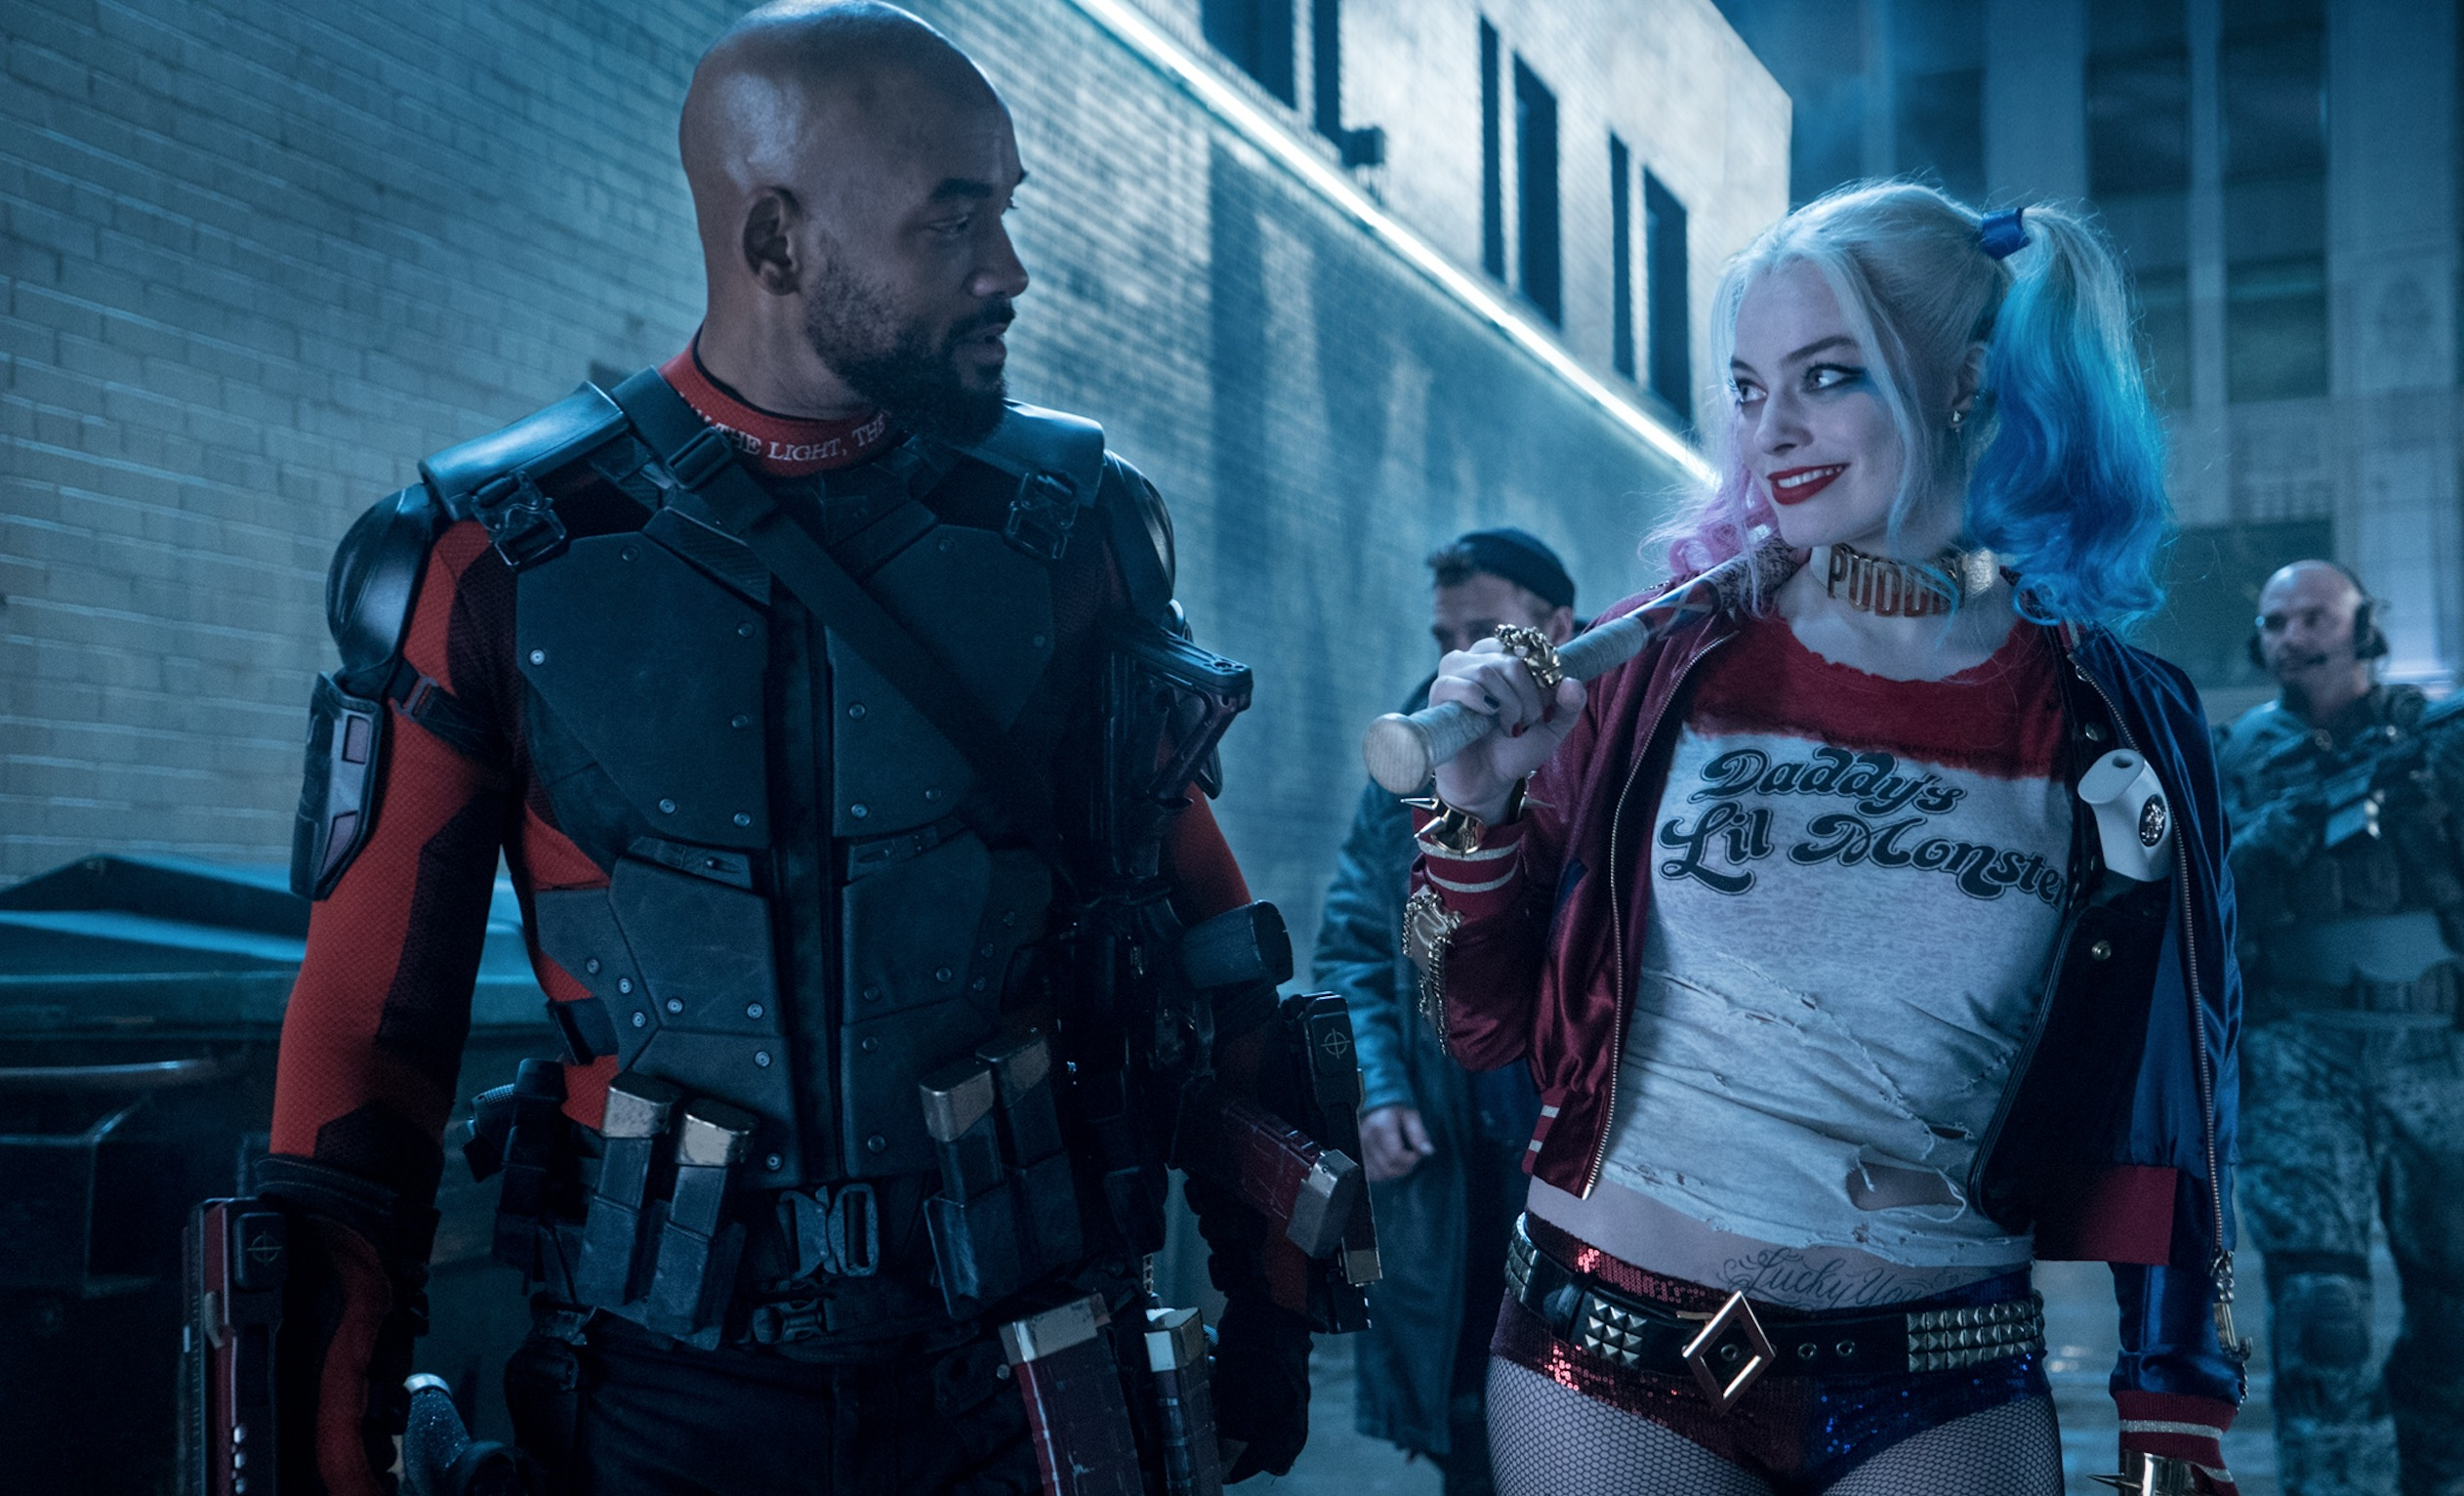 Deadshot-Will-Smith-Suicide-Squad-Harley-Quinn